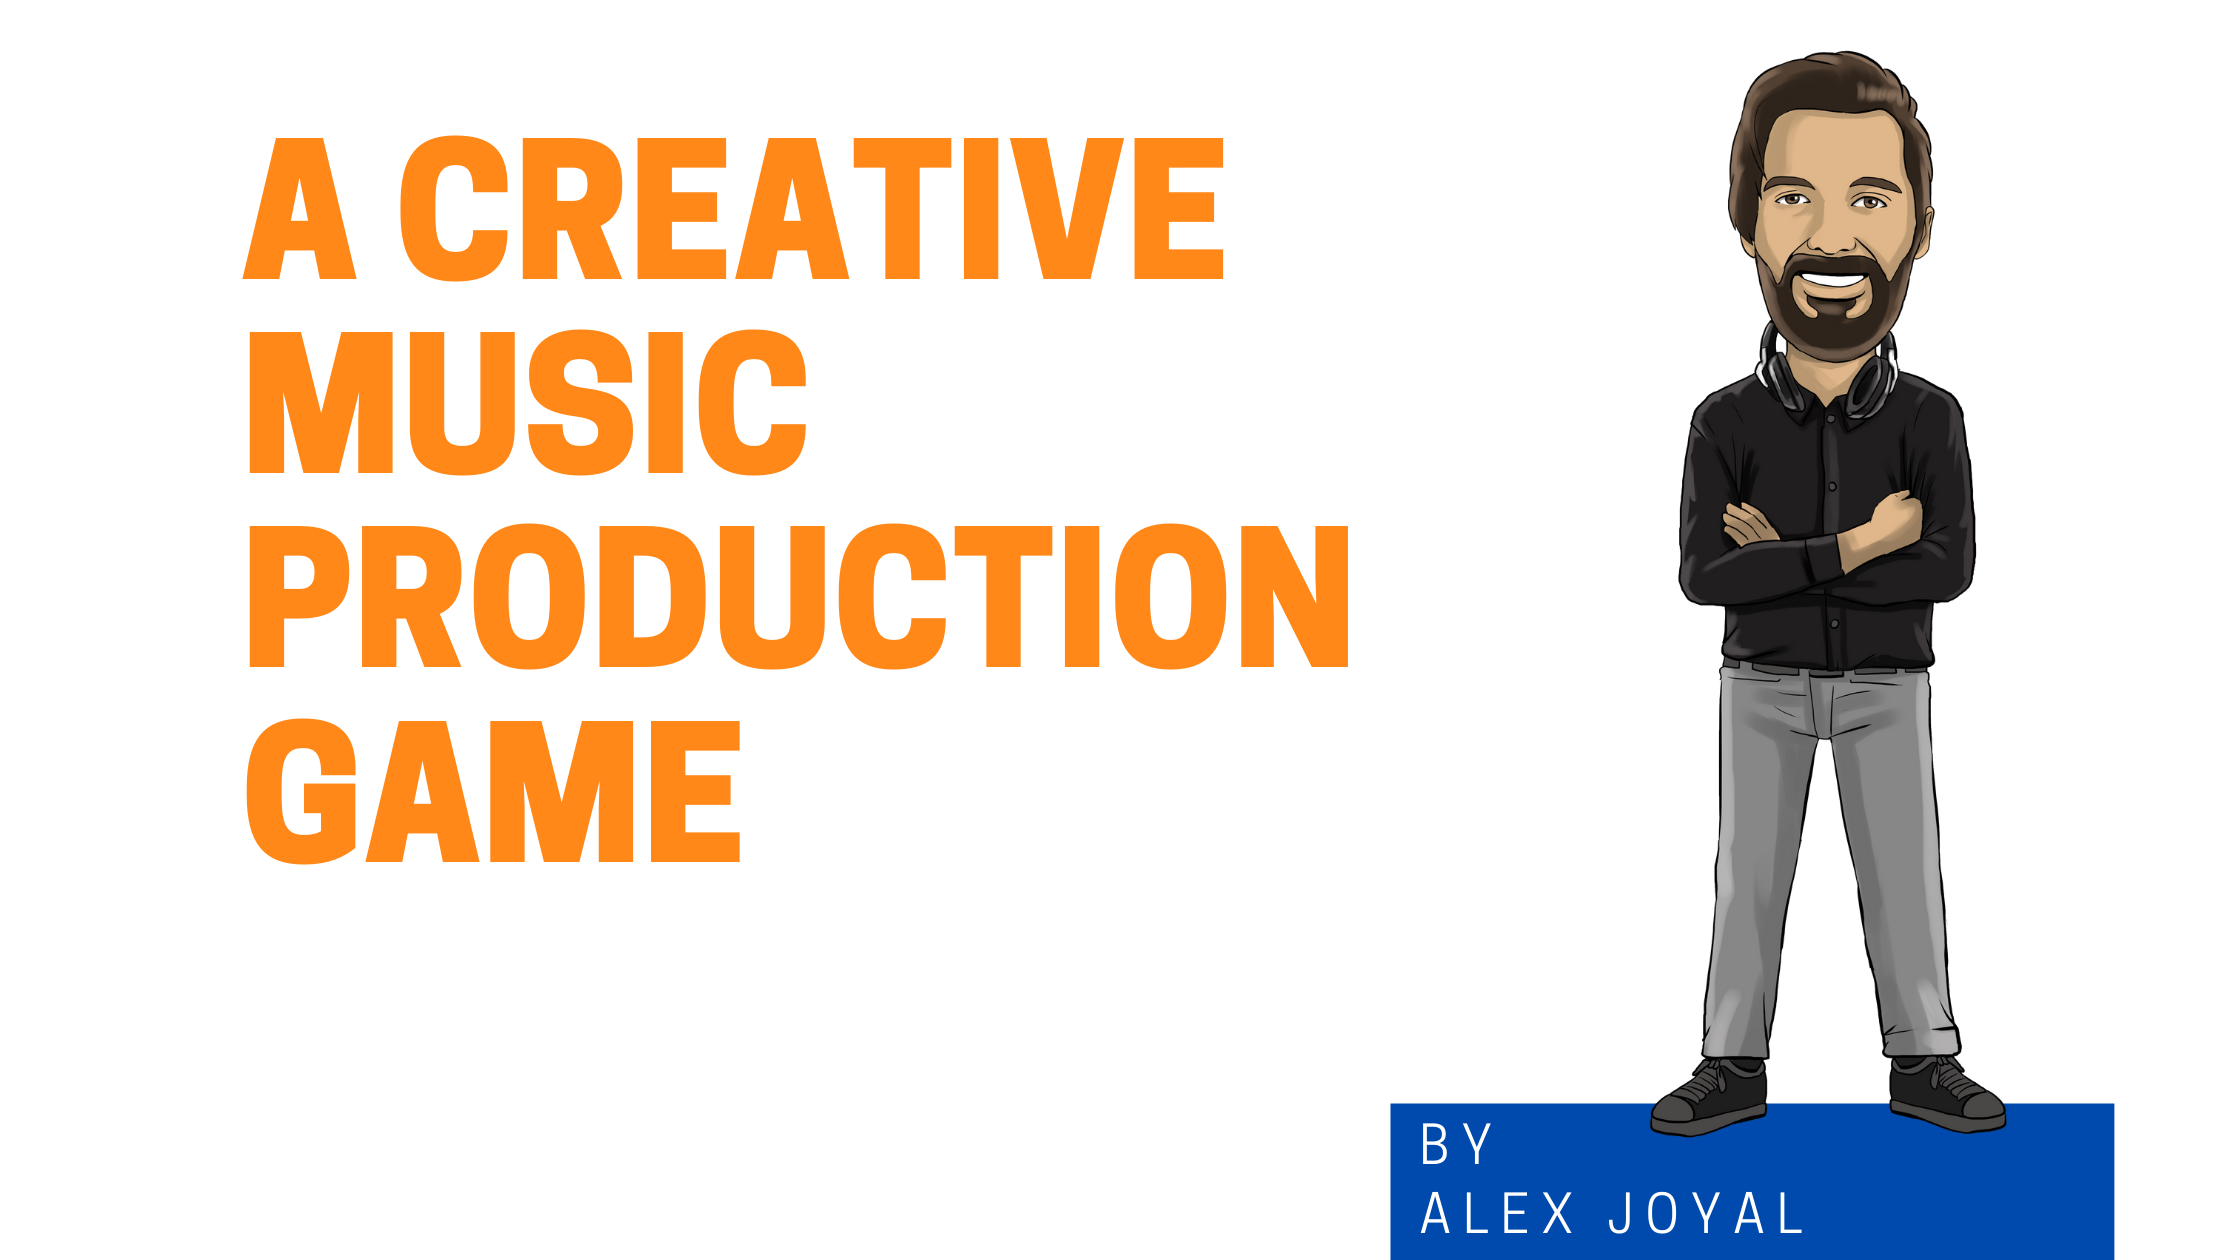 Limitations Crea A Creative Music Production Game graphic with cartoon version of Alex